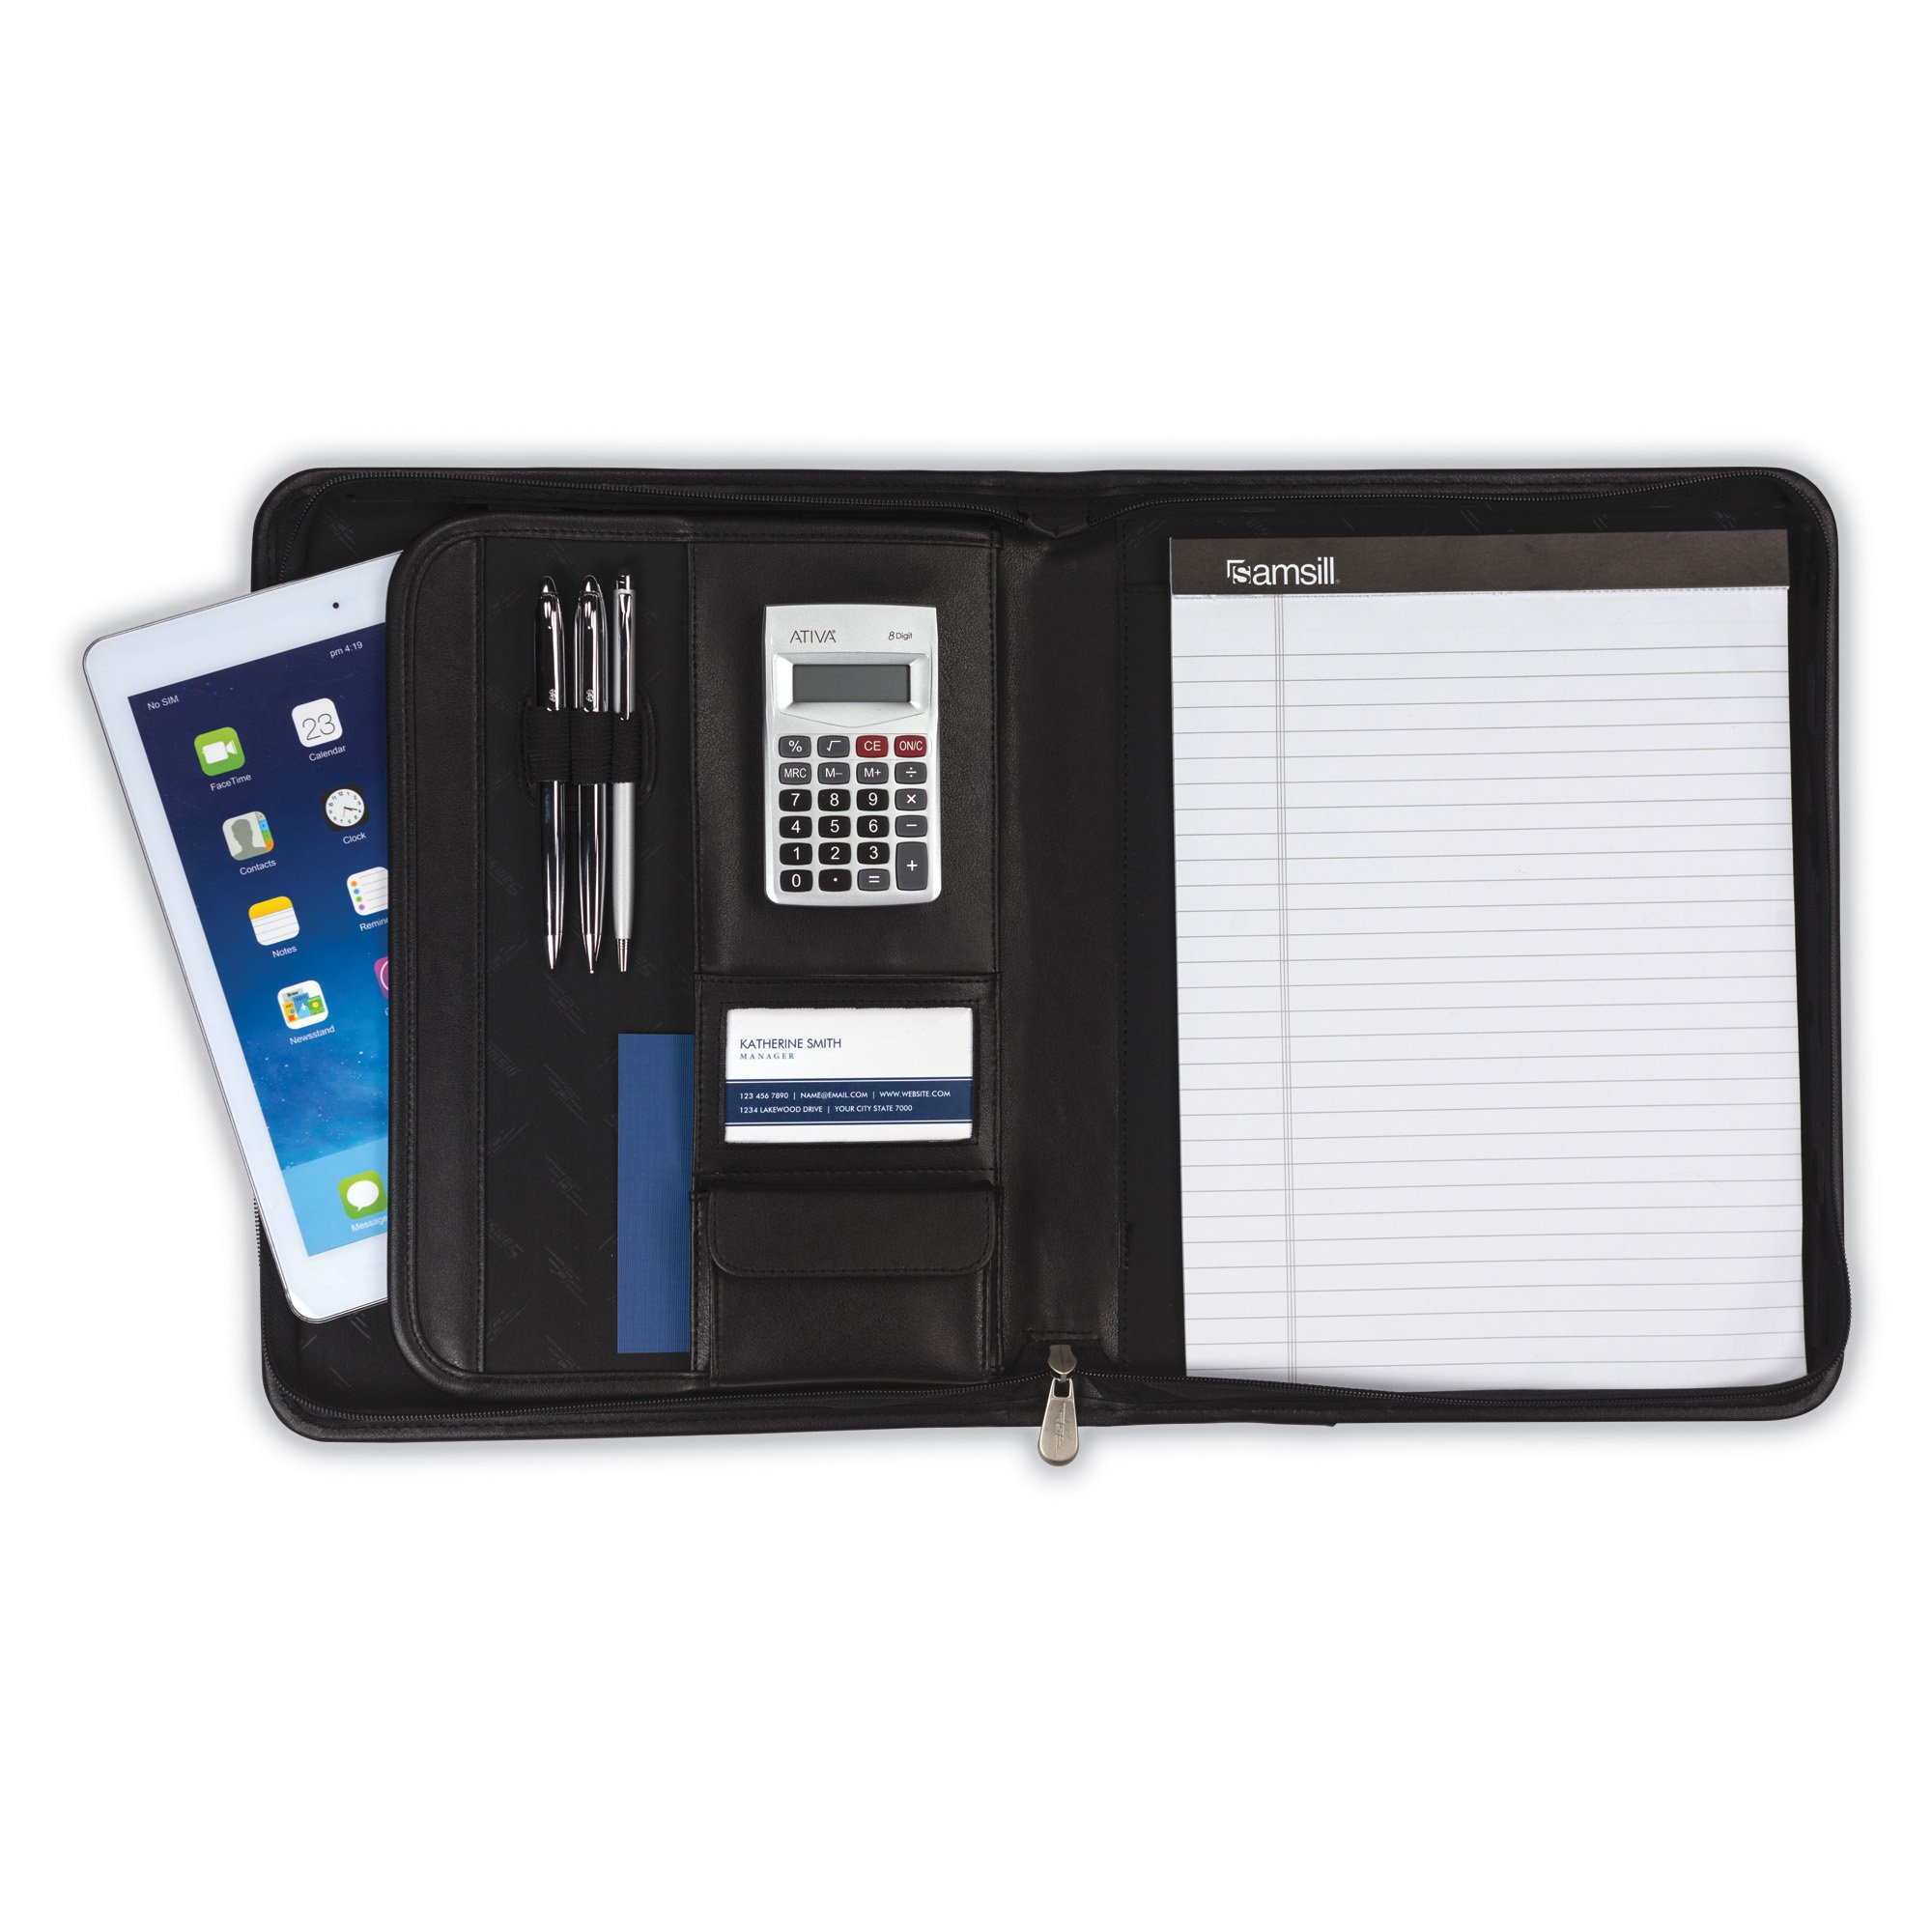 Samsill E-Keeper Portfolio with Zippered Closure, Dual iPad/Tablet Pockets, 8.5 inch x 11 inch Writing Pad, Charcoal/Black